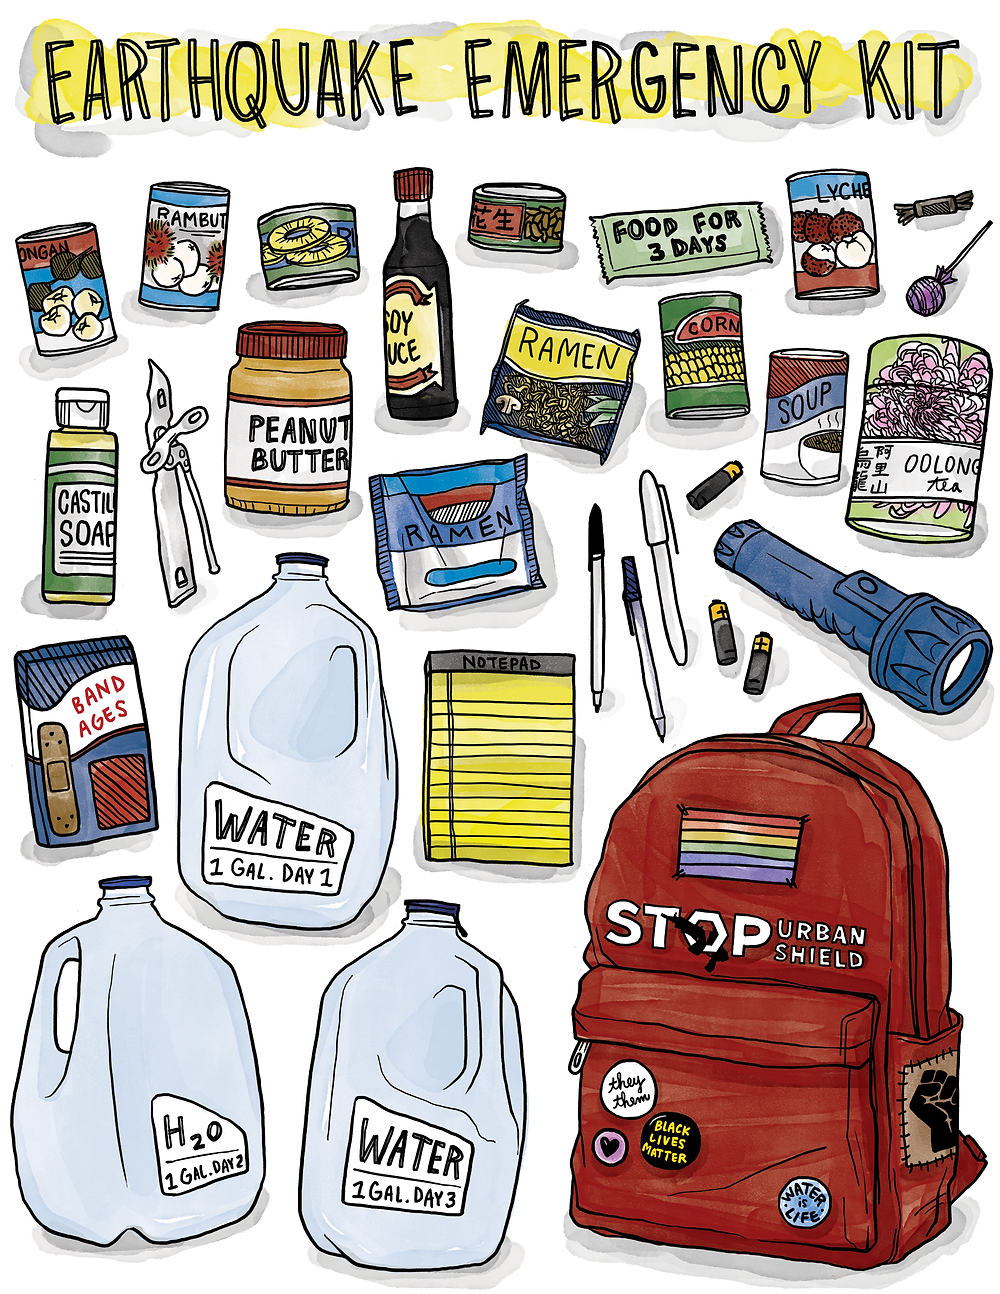 Illustrated earthquake emergency prep kit, ink line and watercolor, shows canned fruit and nuts, soy sauce, ramen packet, peanut butter, pens, paper, flashlight, can opener, band-aids, a red backpack with a rainbow patch and political buttons, and three 1-gallon jugs of water.